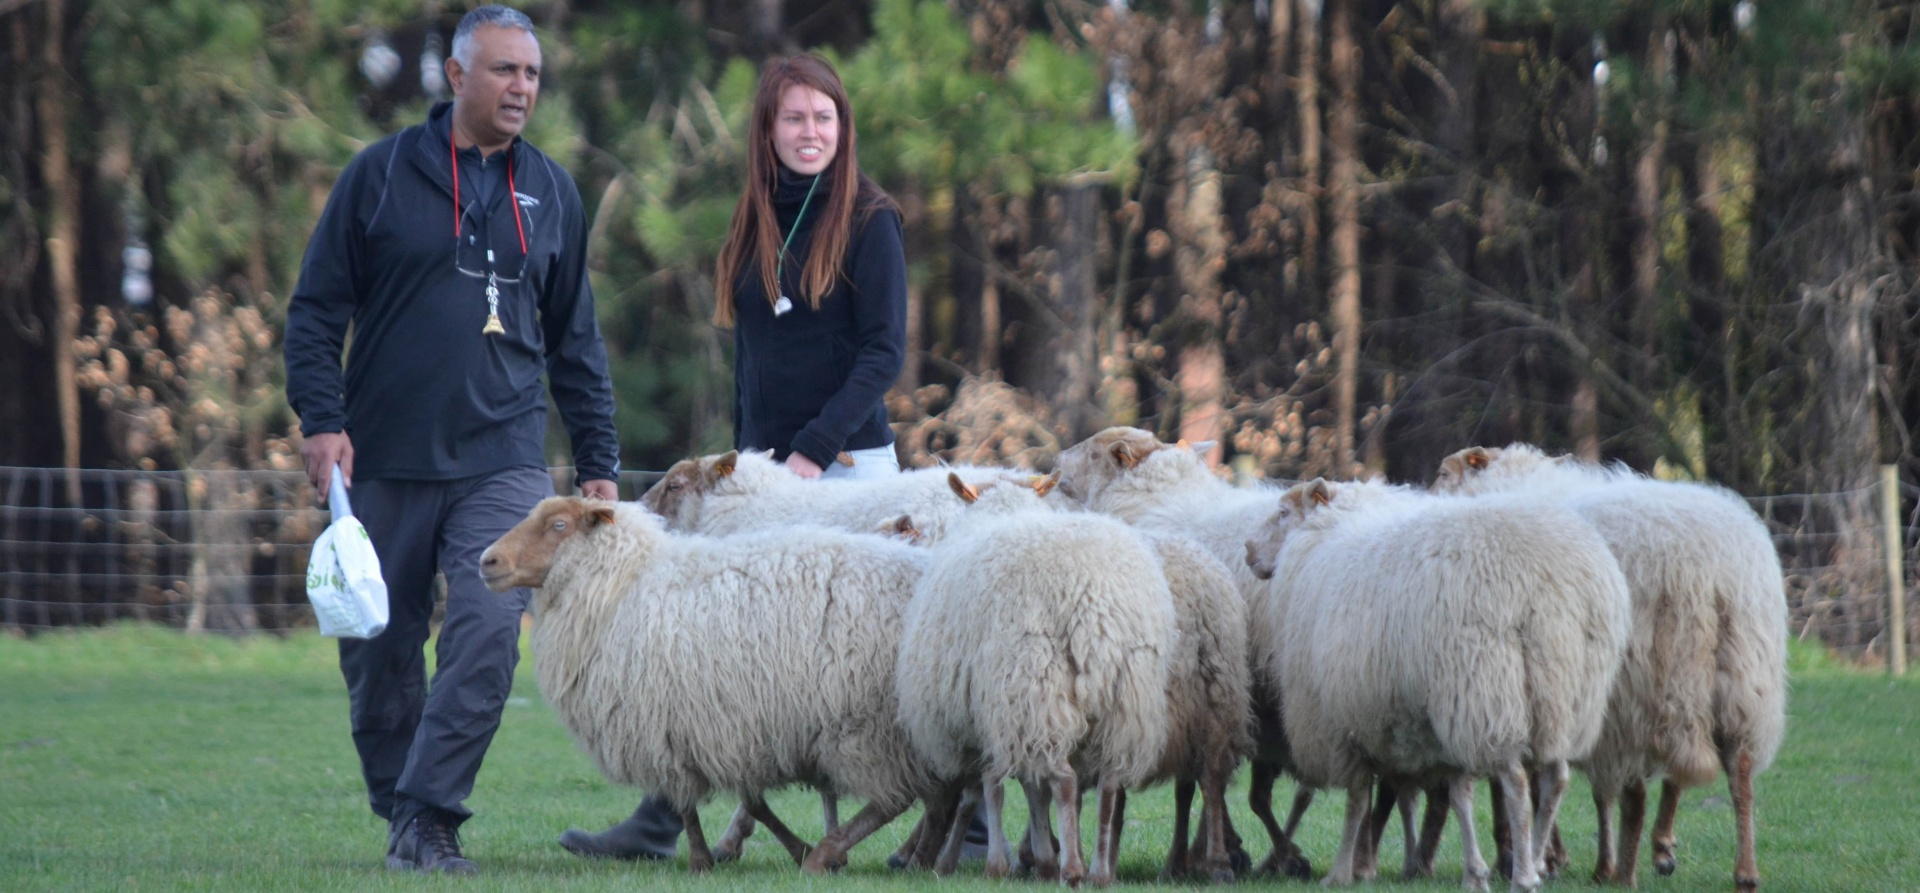 Sheepdog Training Experience for Two - Leicestershire-10